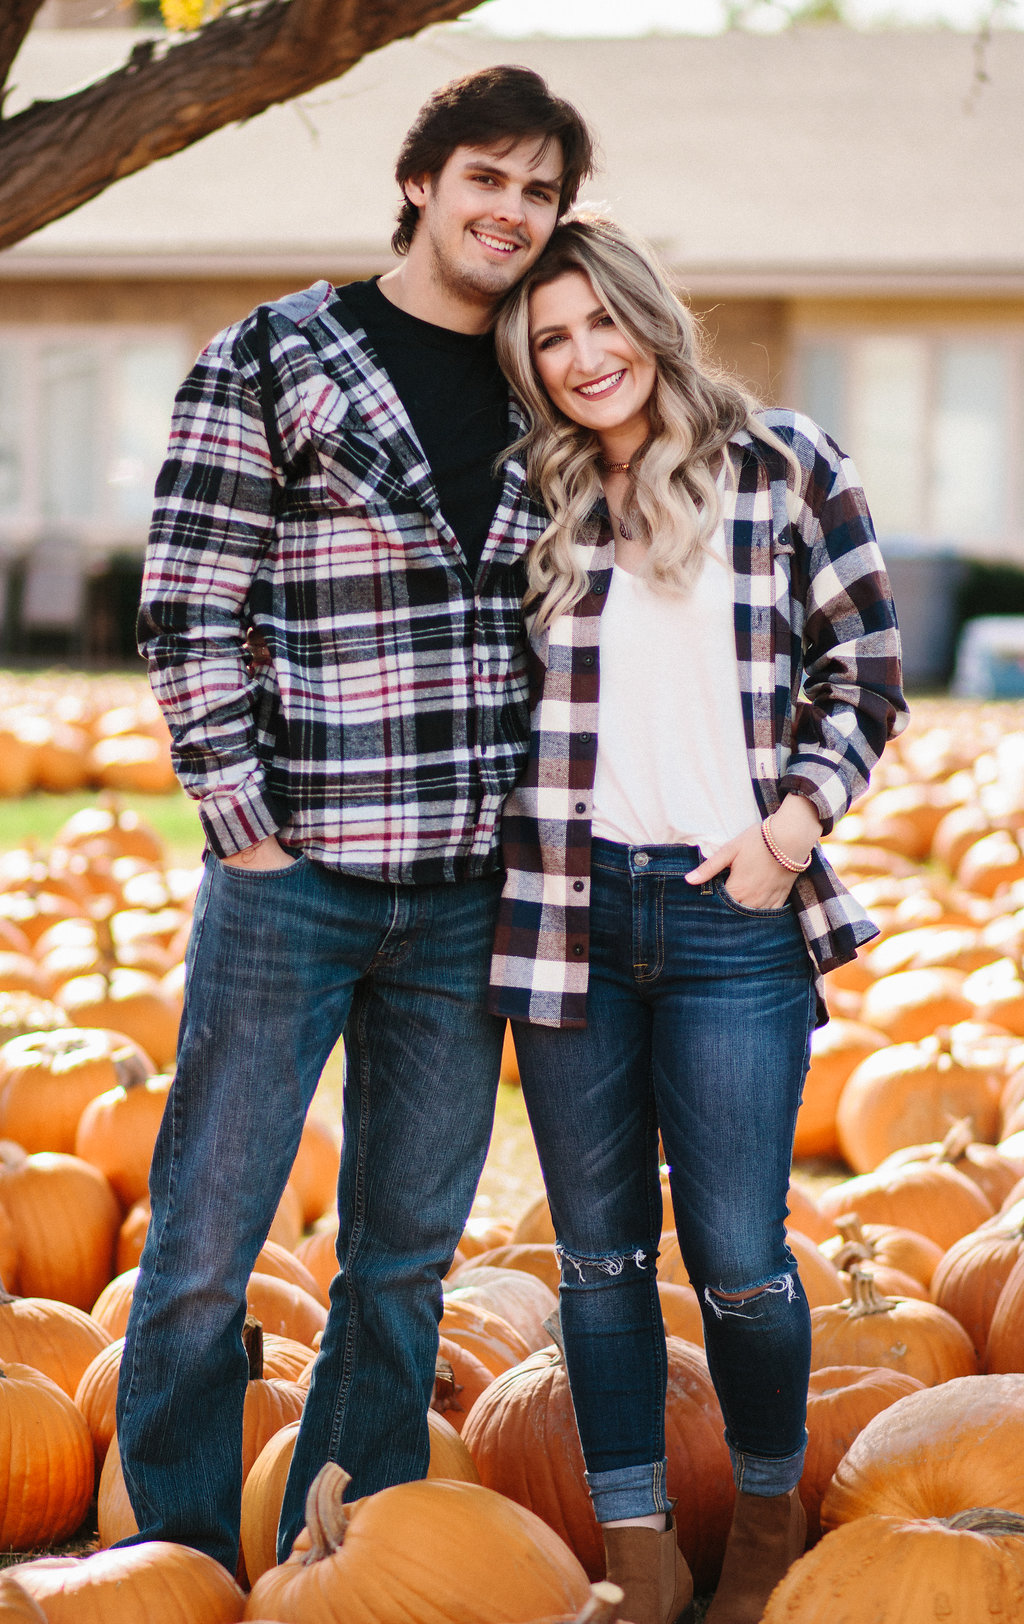 Flannel Season | His & Her | Texas Tech college students | Audrey Madison Stowe a fashion and lifestyle blogger